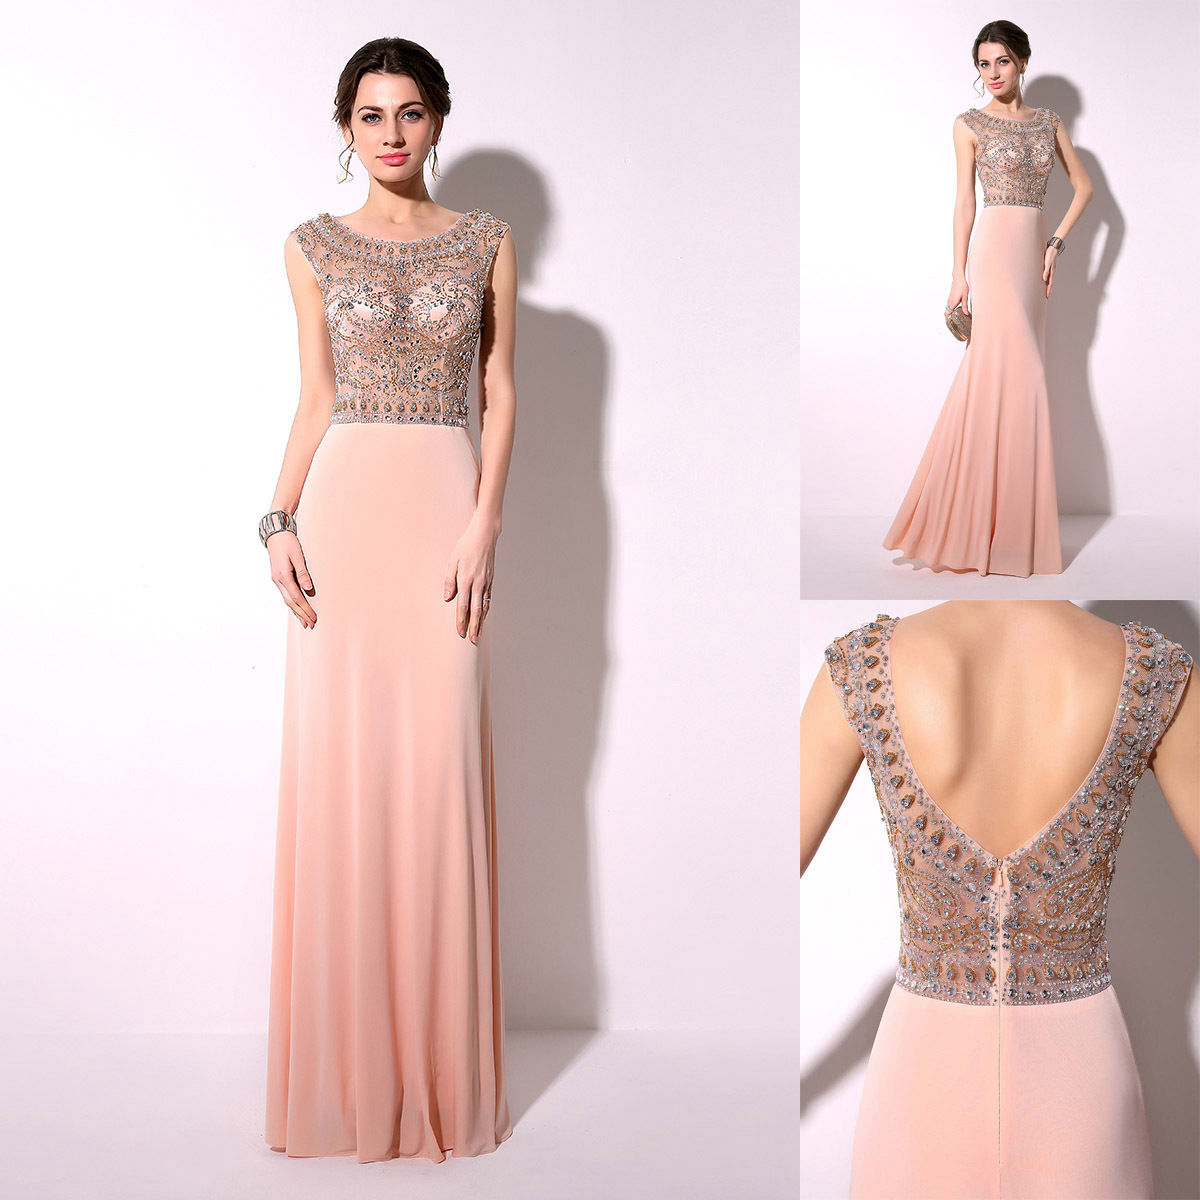 Look your beauty in Blush Gown - 24 Dressi